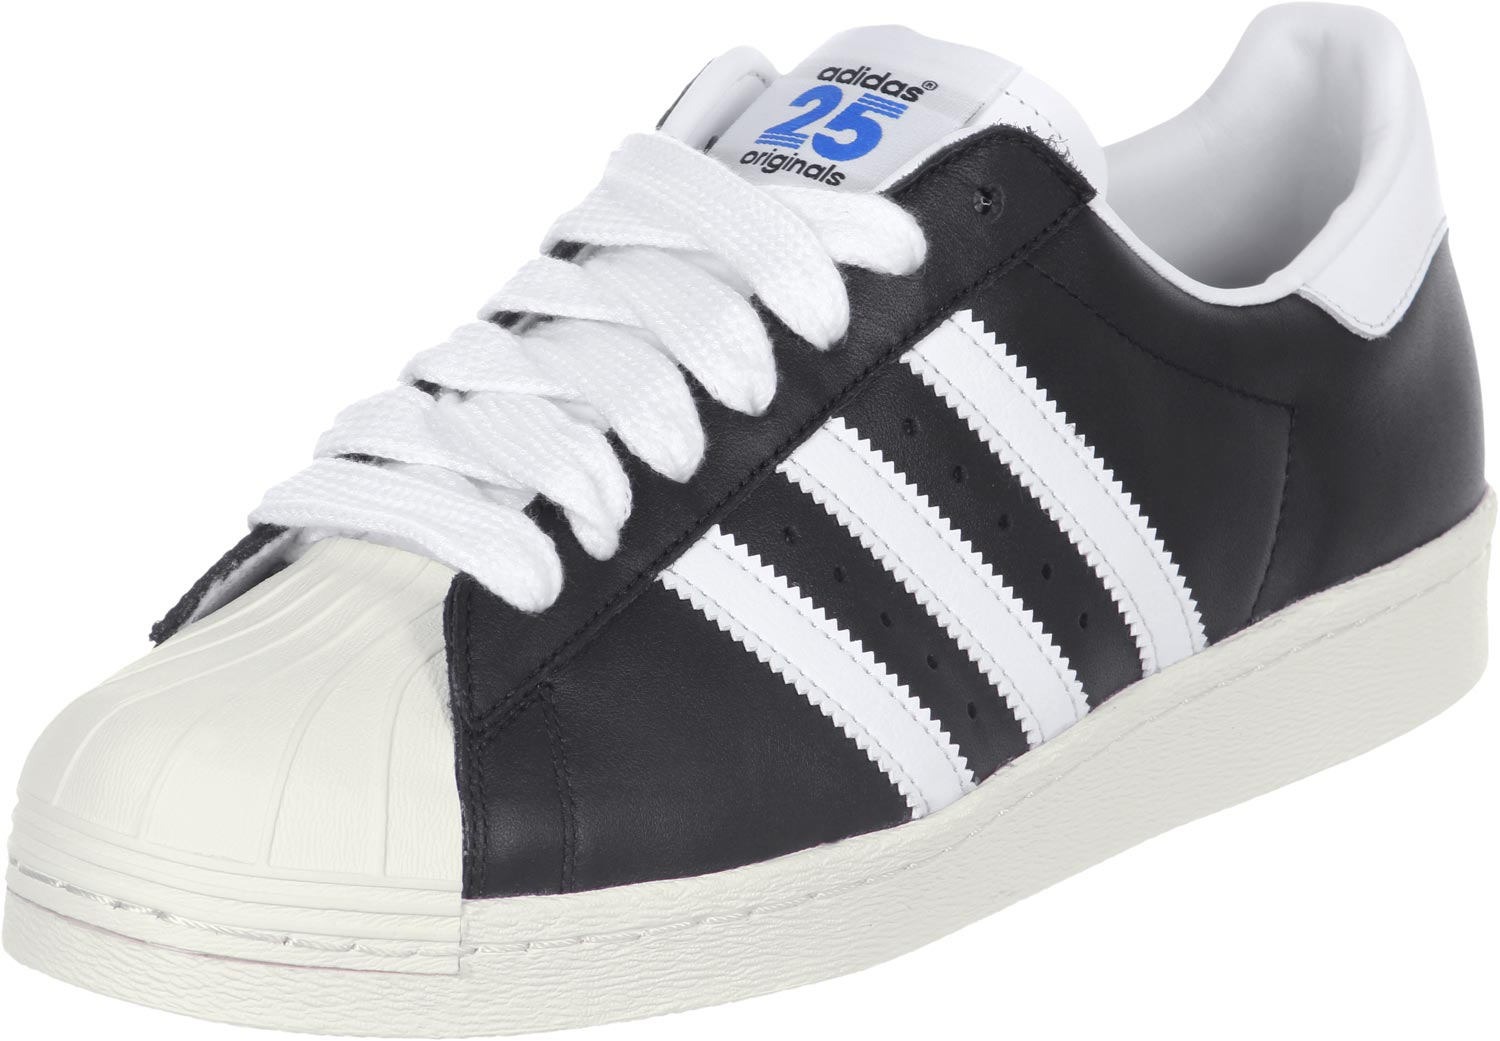 adidas superstar hyke adidas superstar paillette argent adidas superstar synthetic leather. Black Bedroom Furniture Sets. Home Design Ideas